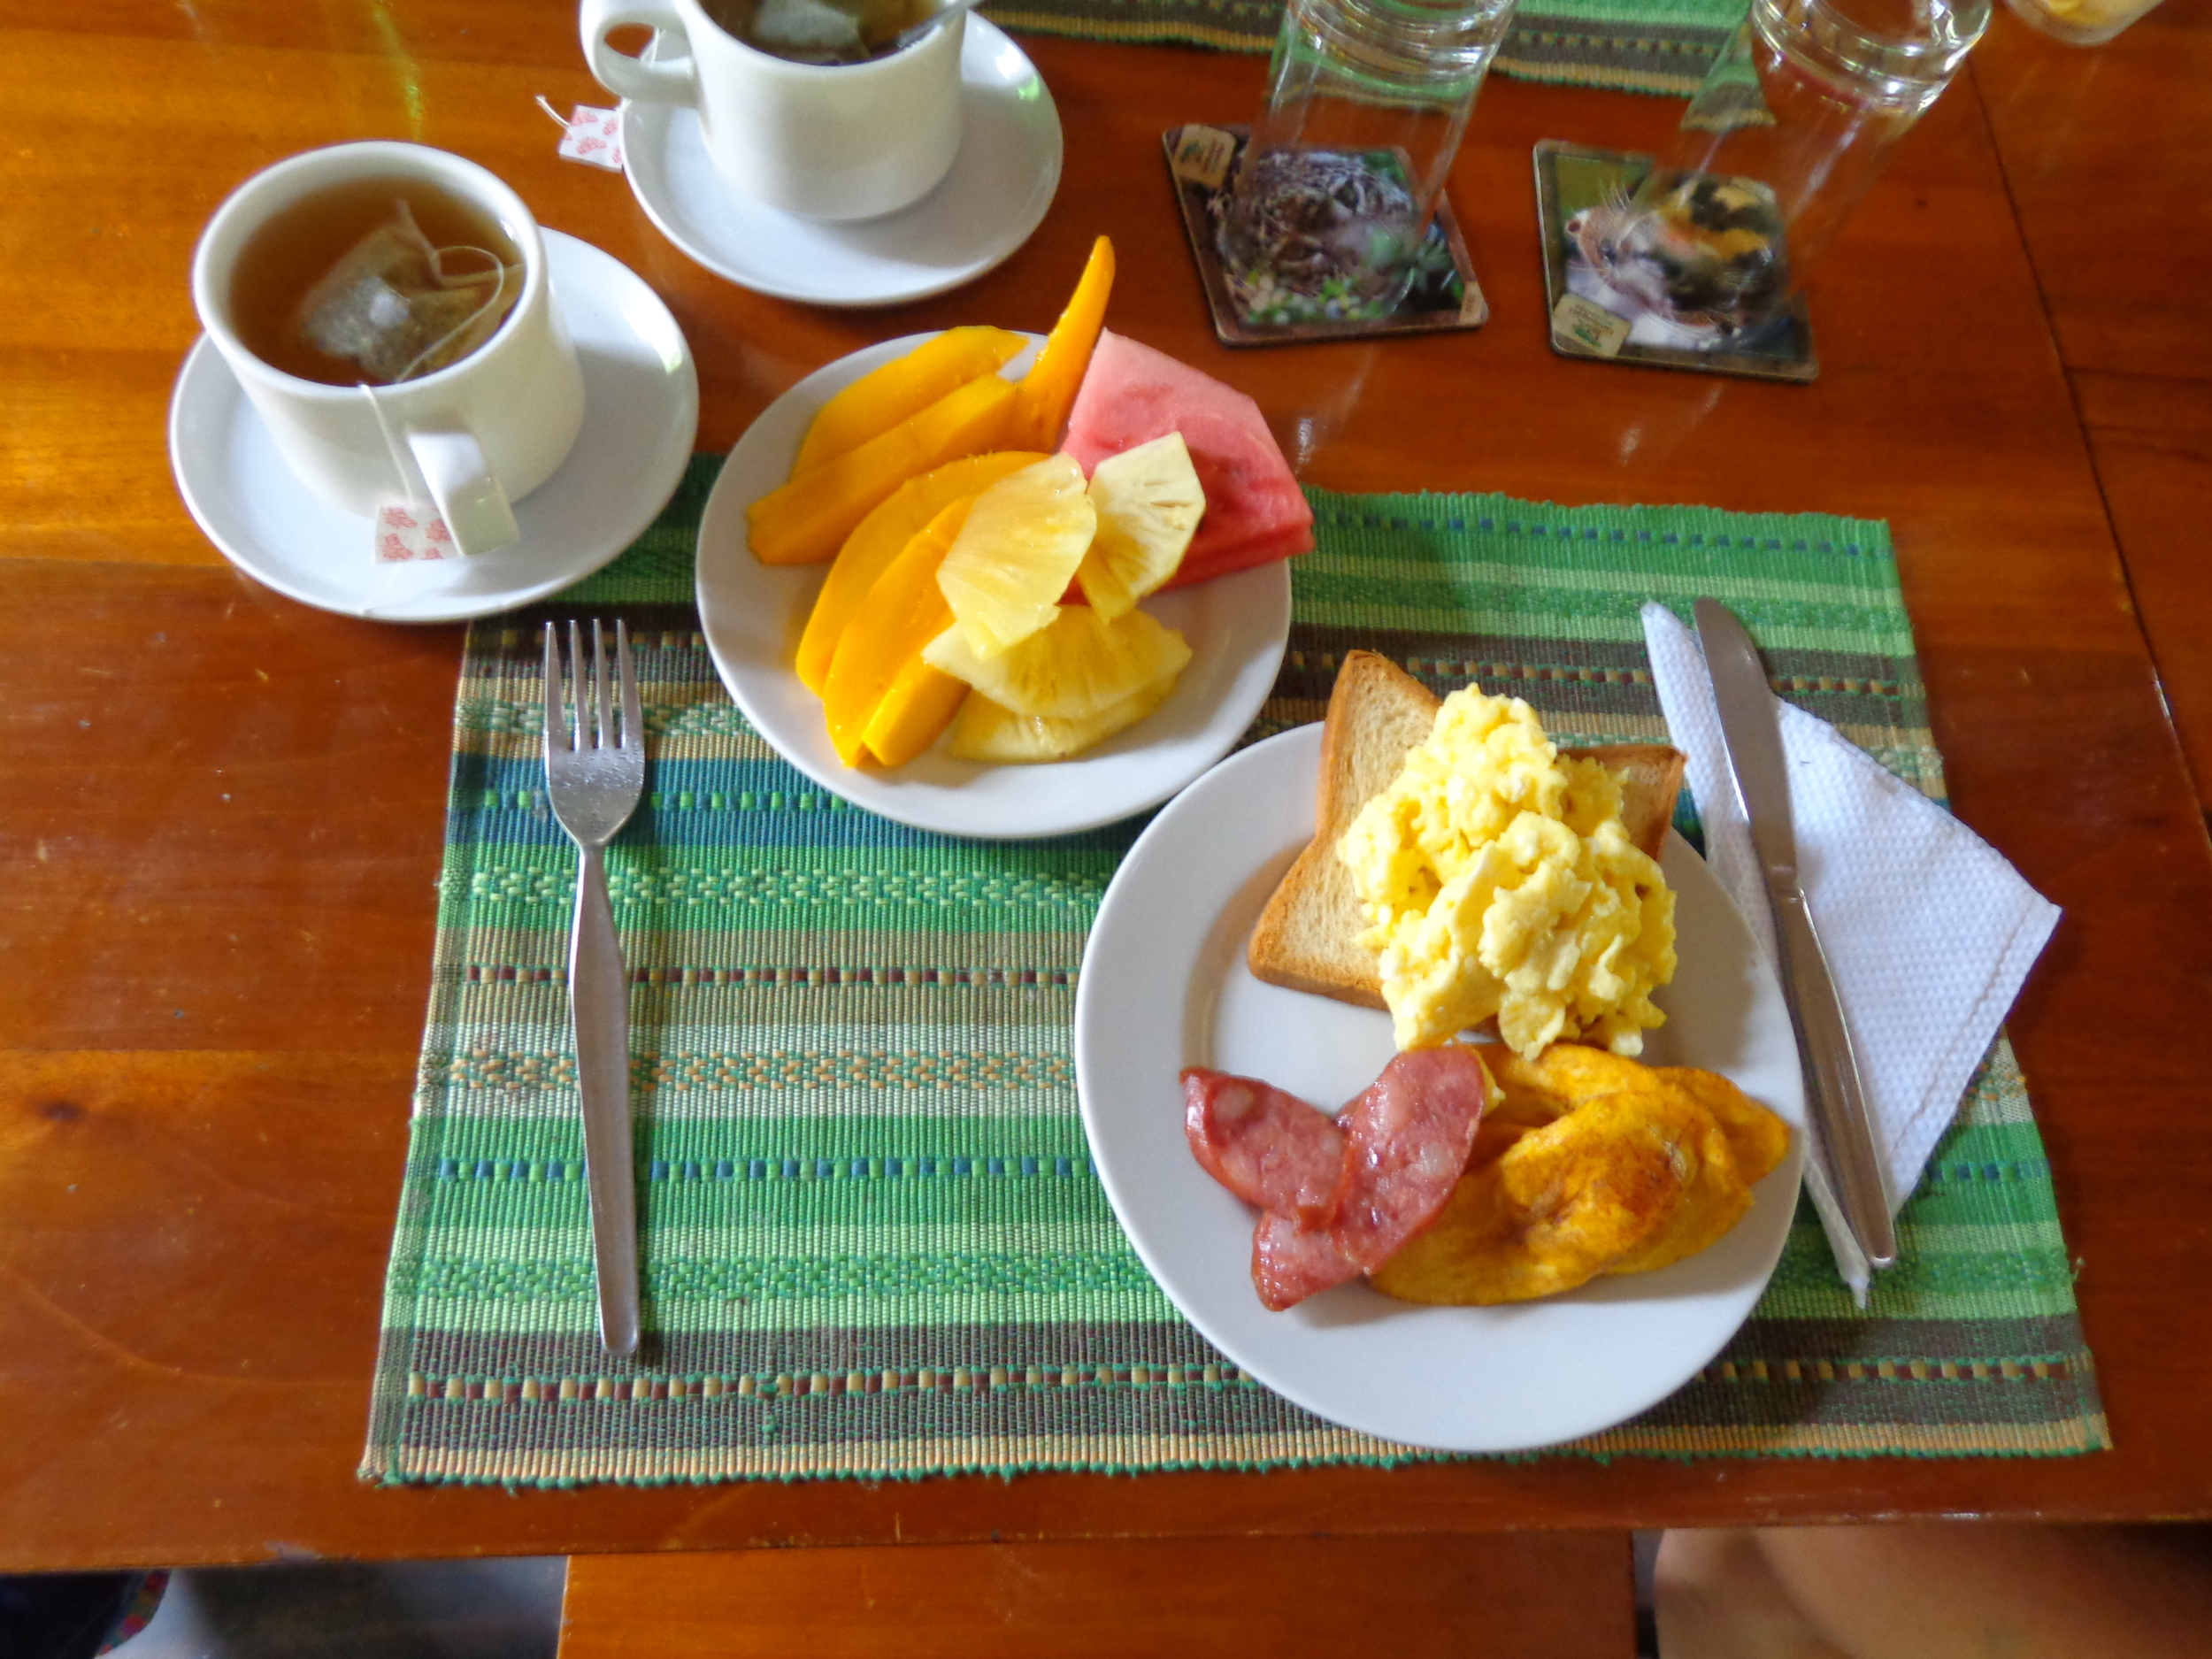 We had the yummiest meals at the eco lodge. The fresh fruit and plantains were my favorite!